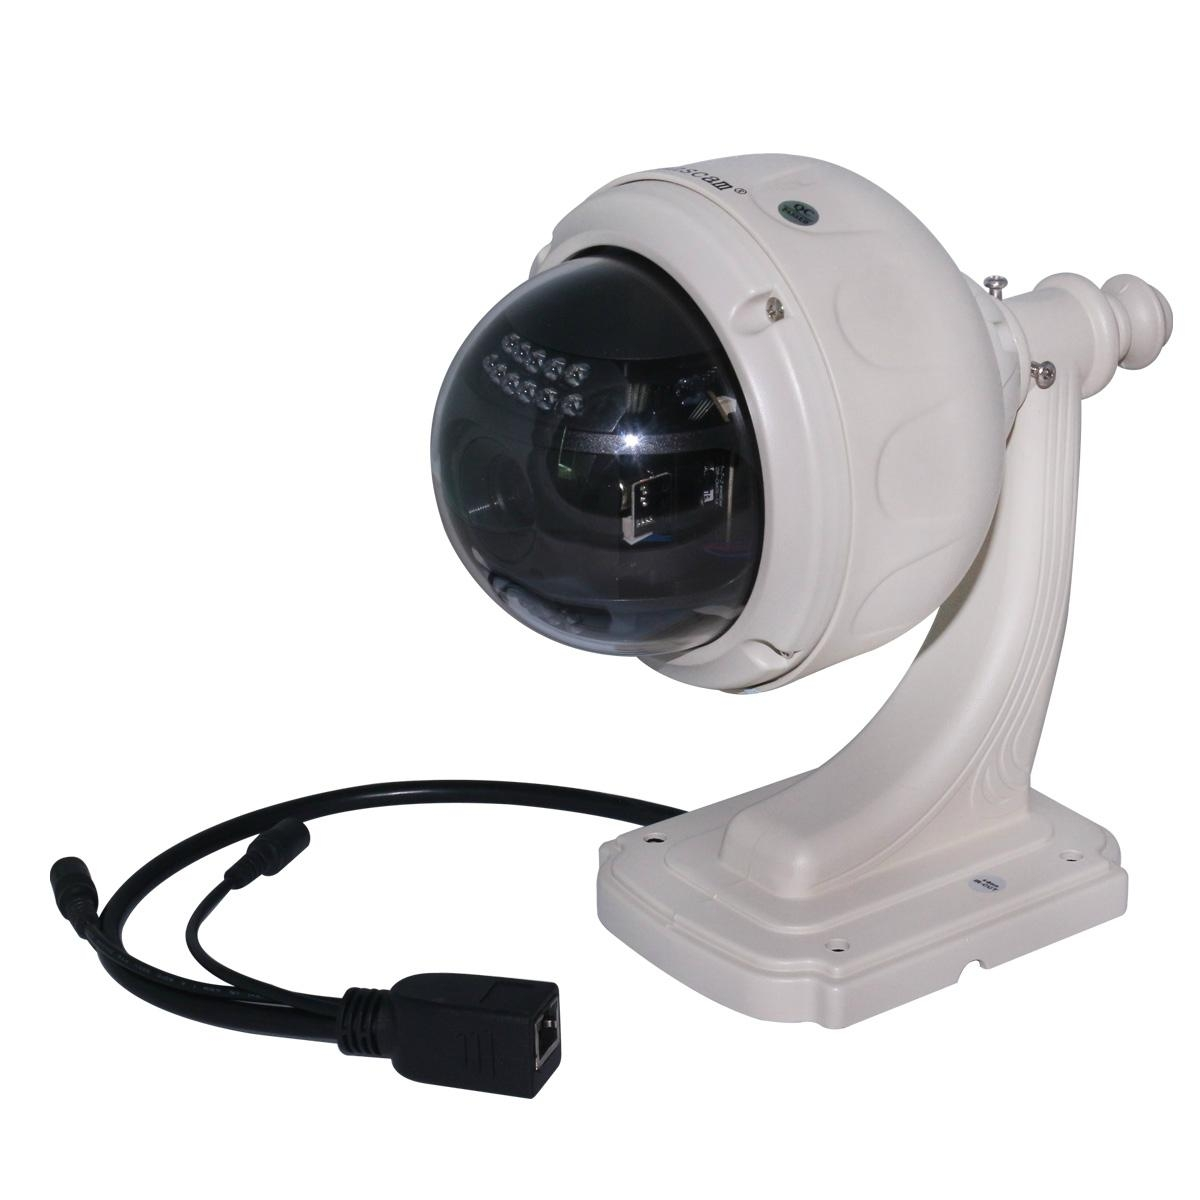 Home Surveillance 1MP HD PTZ Zoom Outdoor Dome H.264 Mobile View IP Camera 4